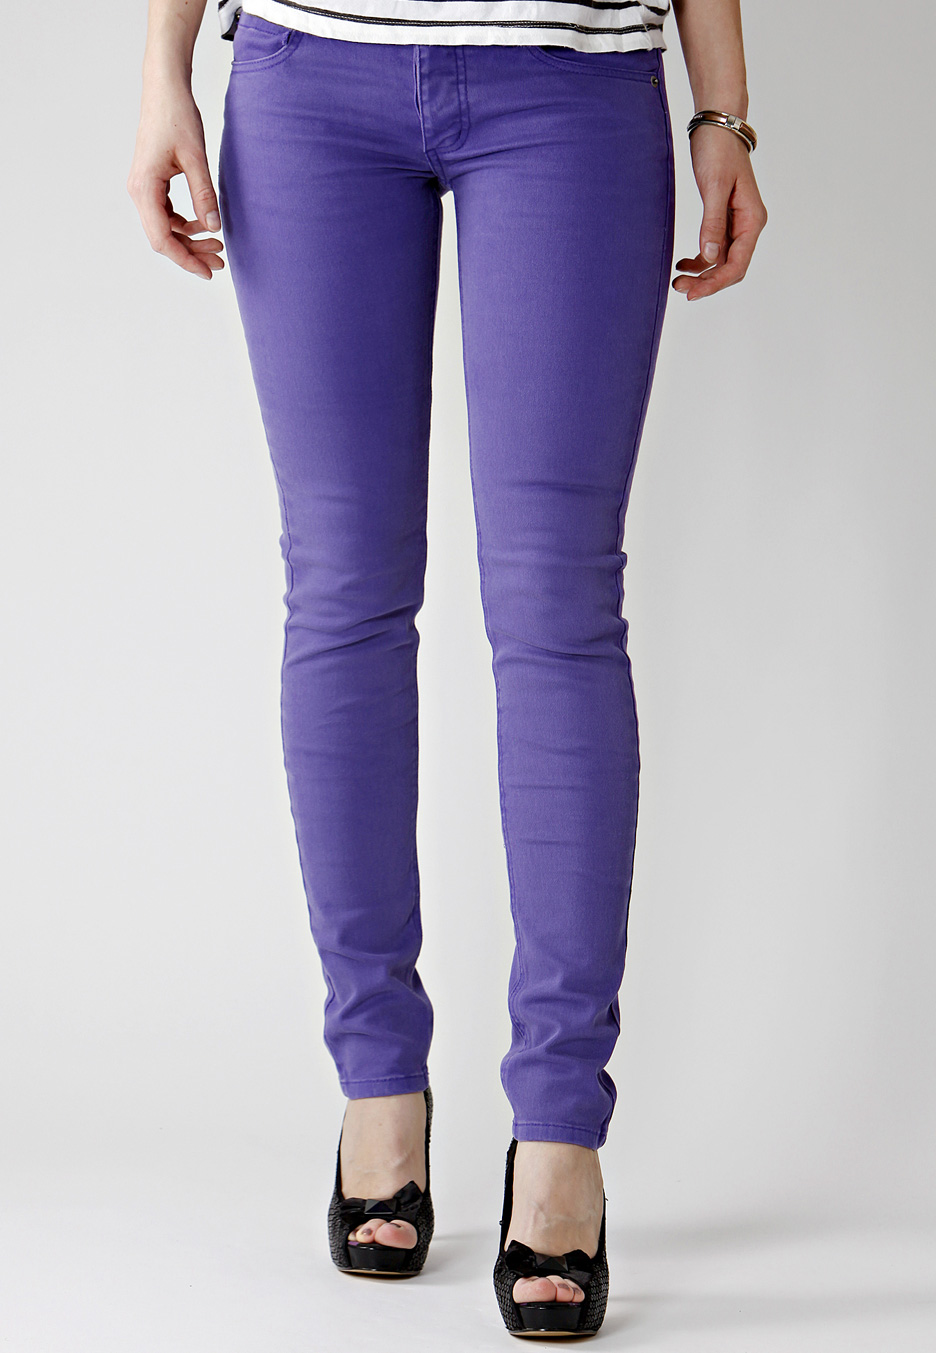 Cheap Monday - Narrow OD Lilac - Girl Jeans - Impericon.com Worldwide